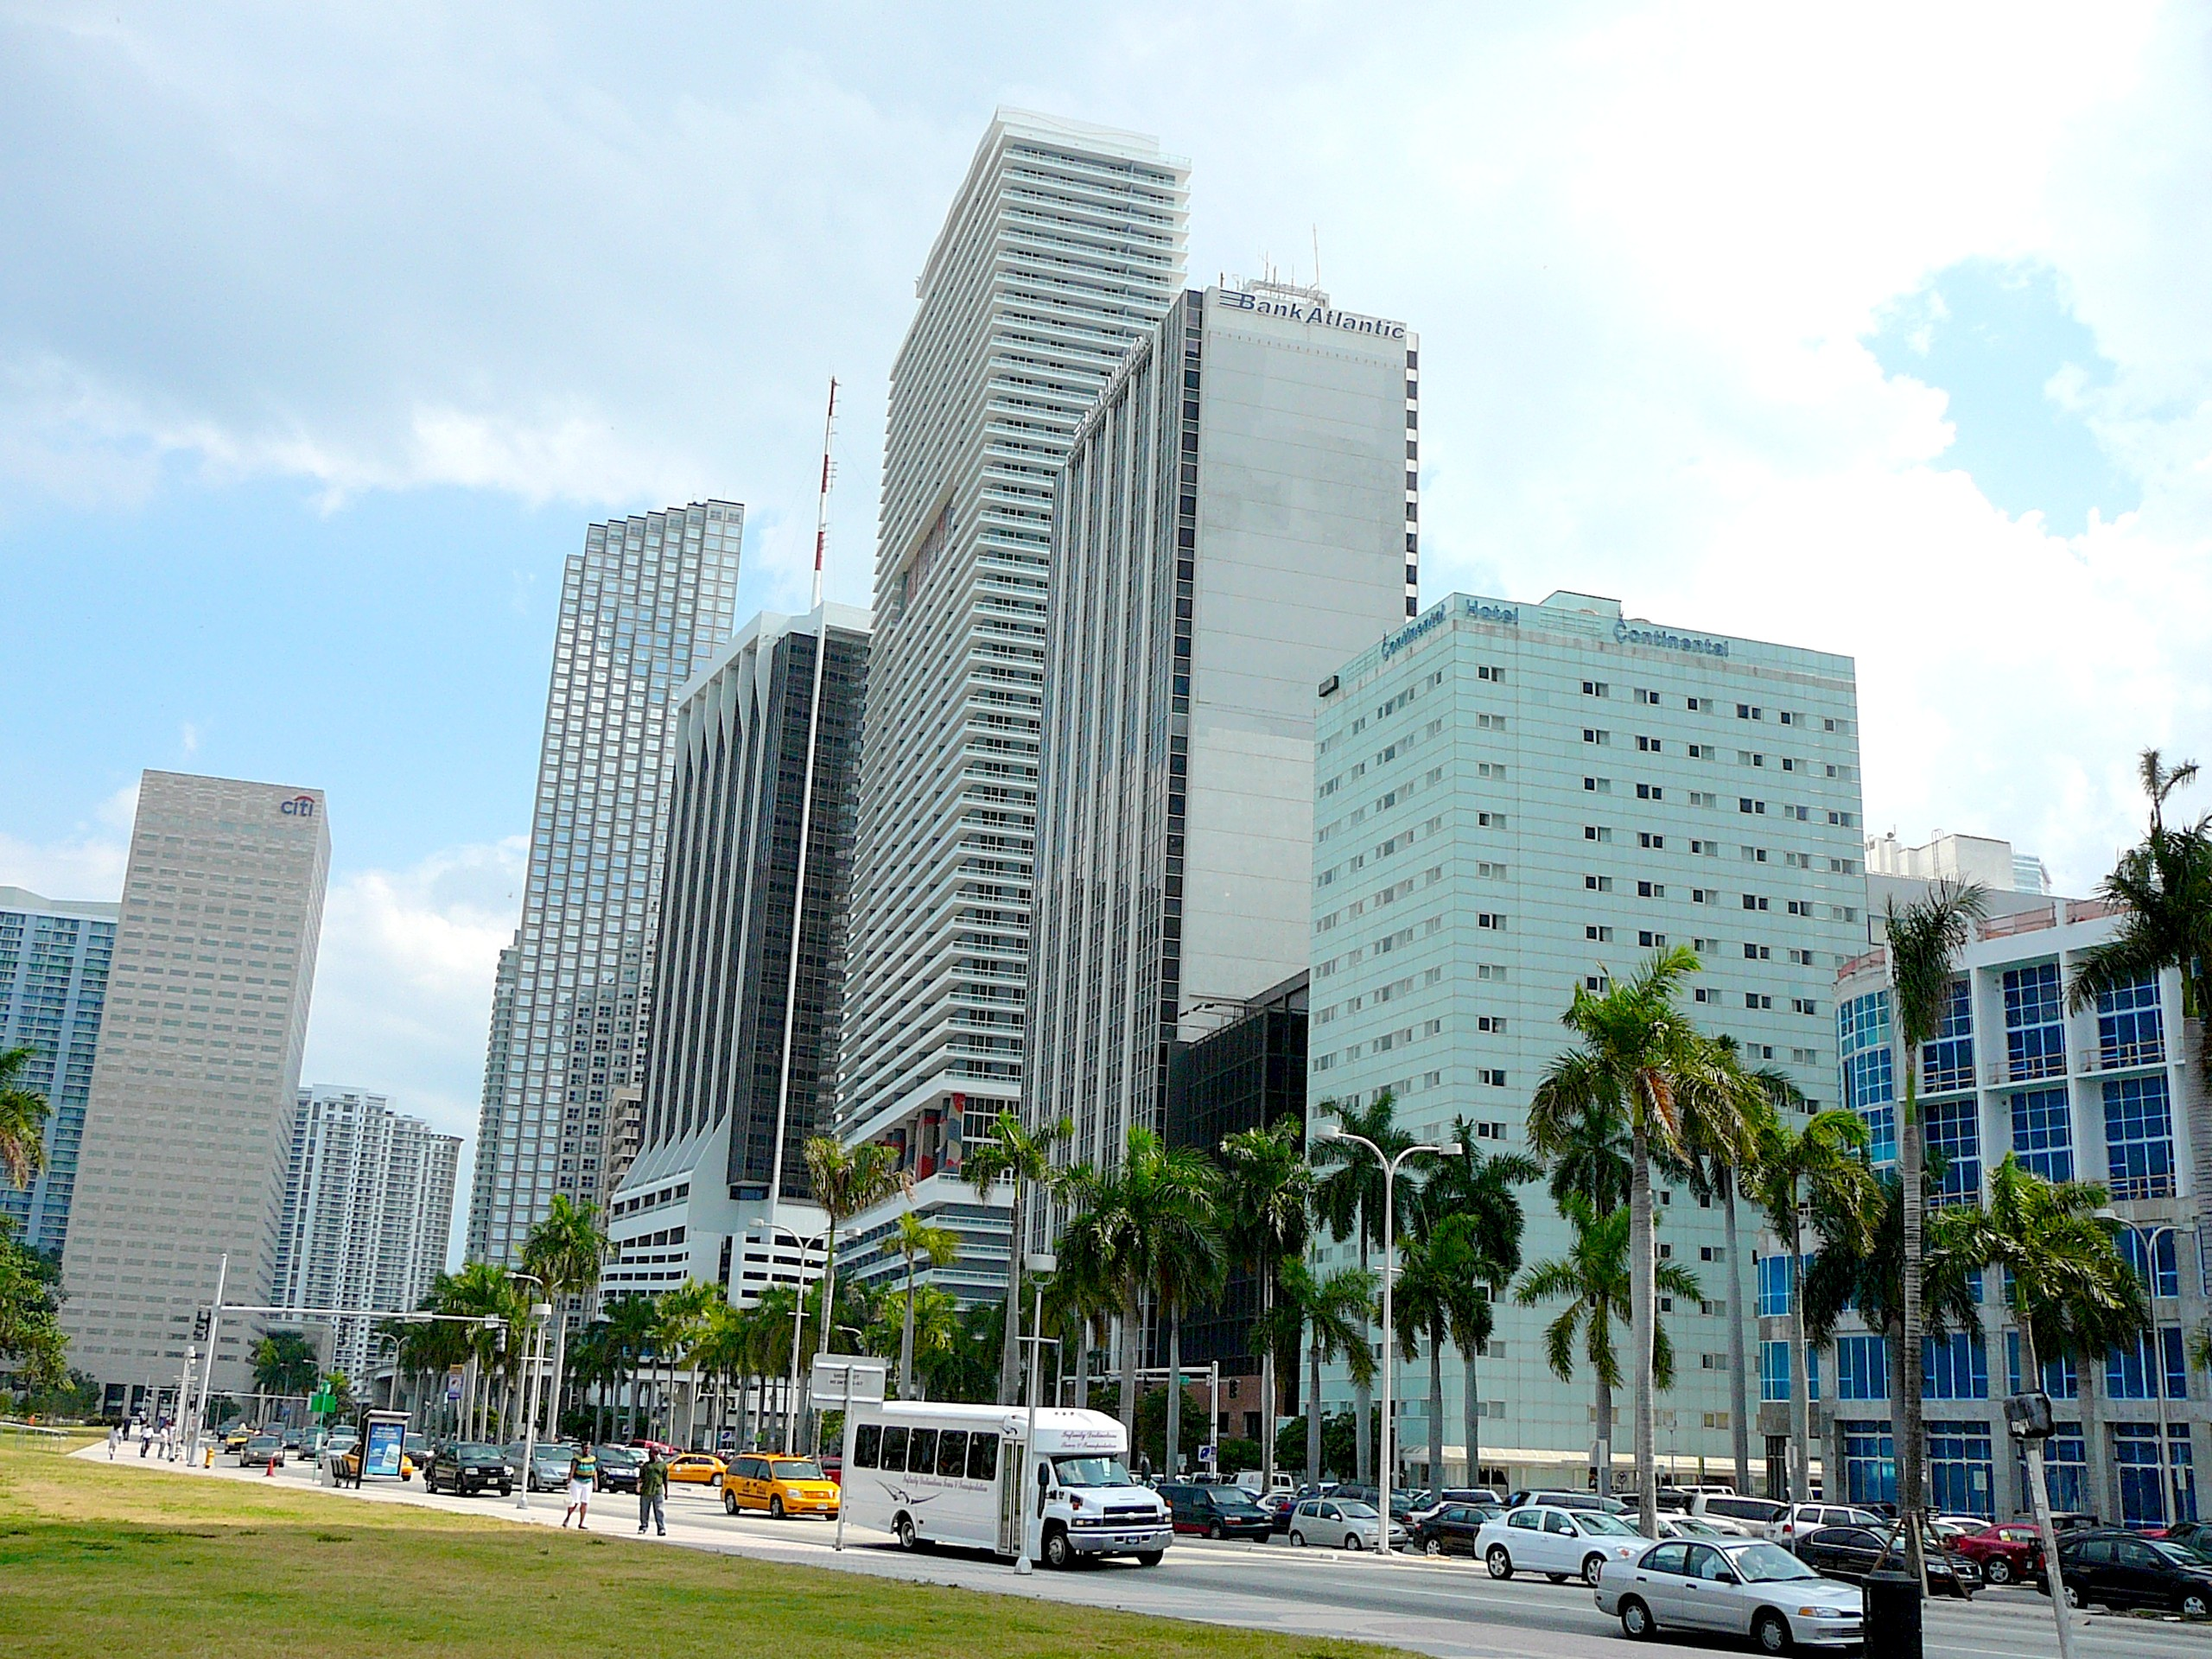 FileBiscayne Boulevard South Endjpg Wikimedia Commons